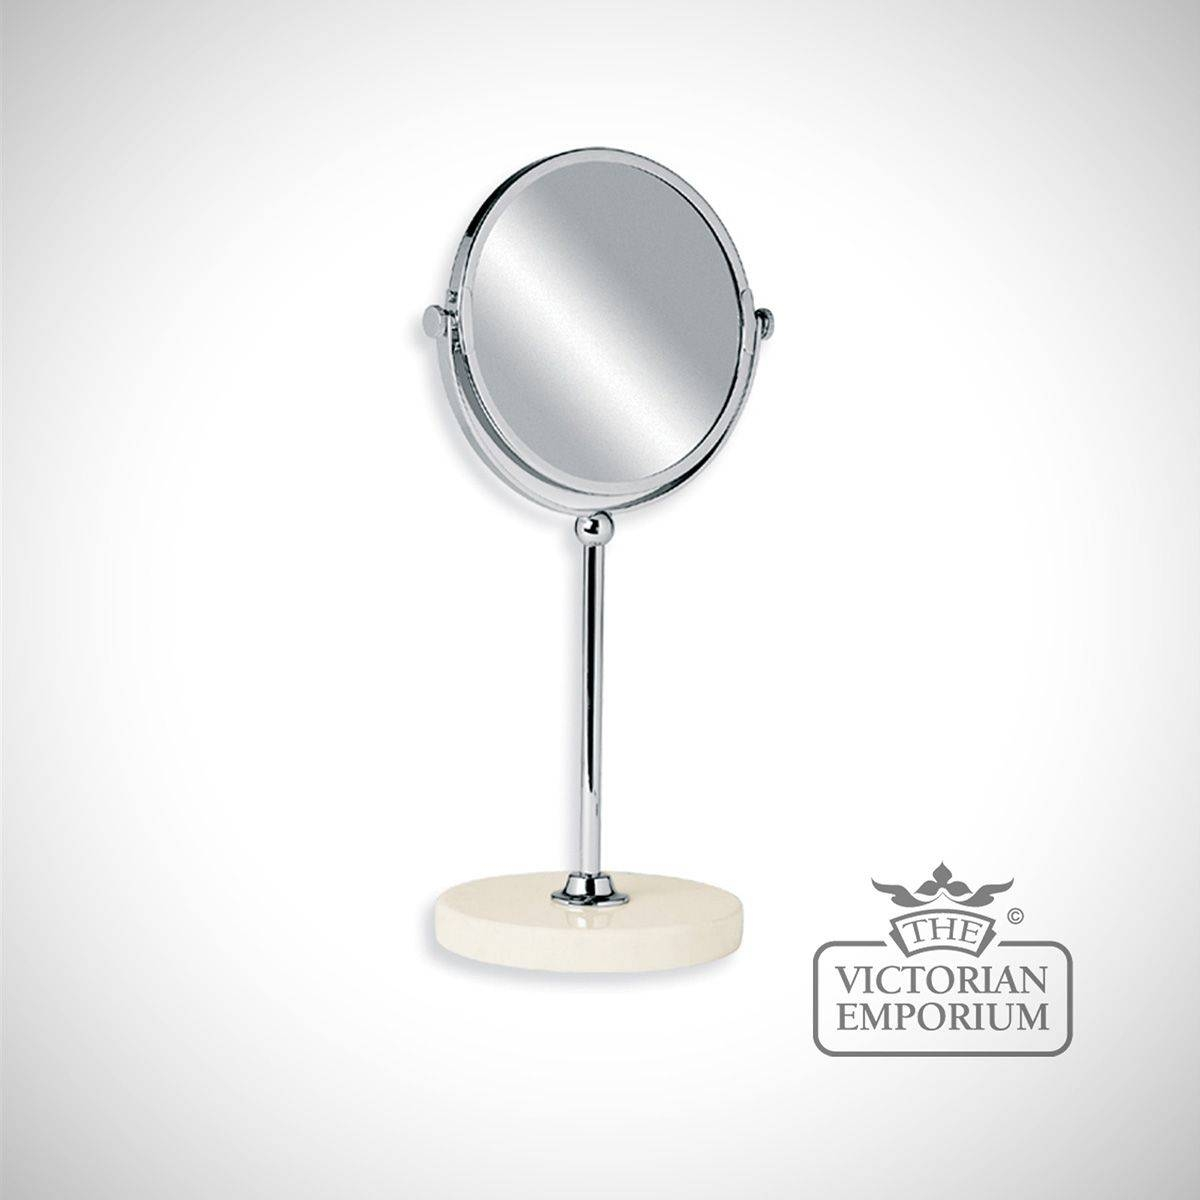 Edwardian Free Standing Vanity Mirror With Marble Base | Mirrors pertaining to Victorian Standing Mirrors (Image 5 of 15)